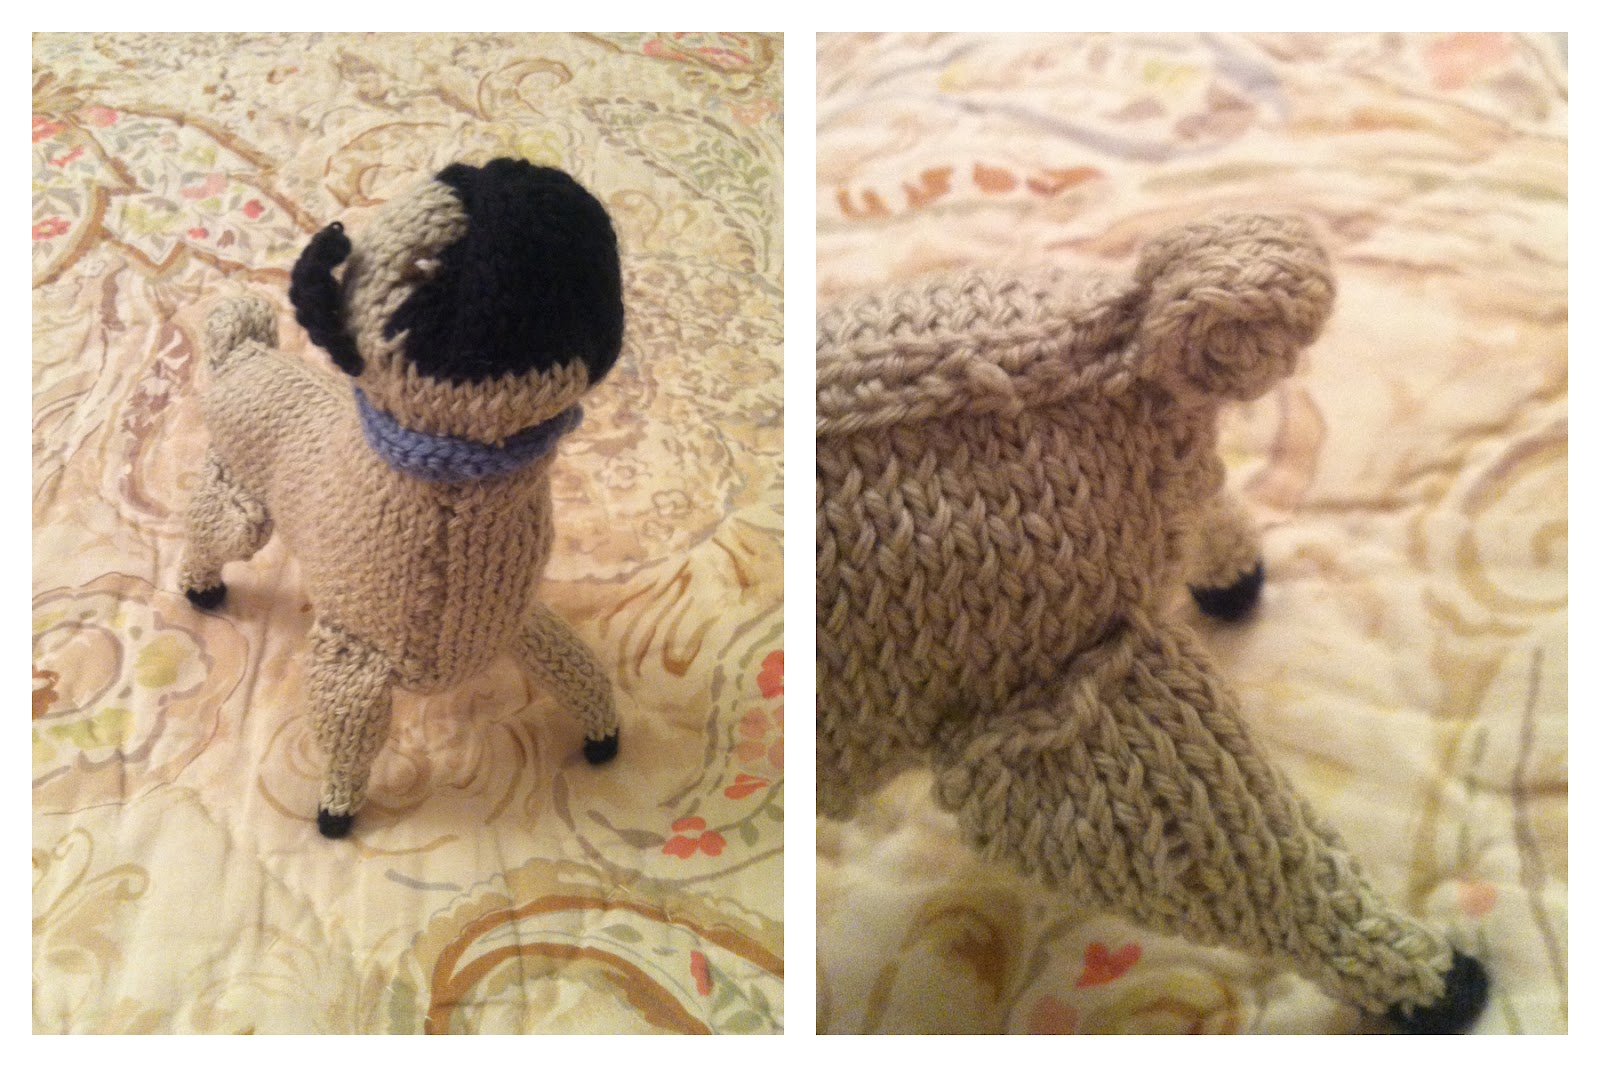 Knitted Pug Pattern : anna knits, etc.: anna knits - knit pug update 3